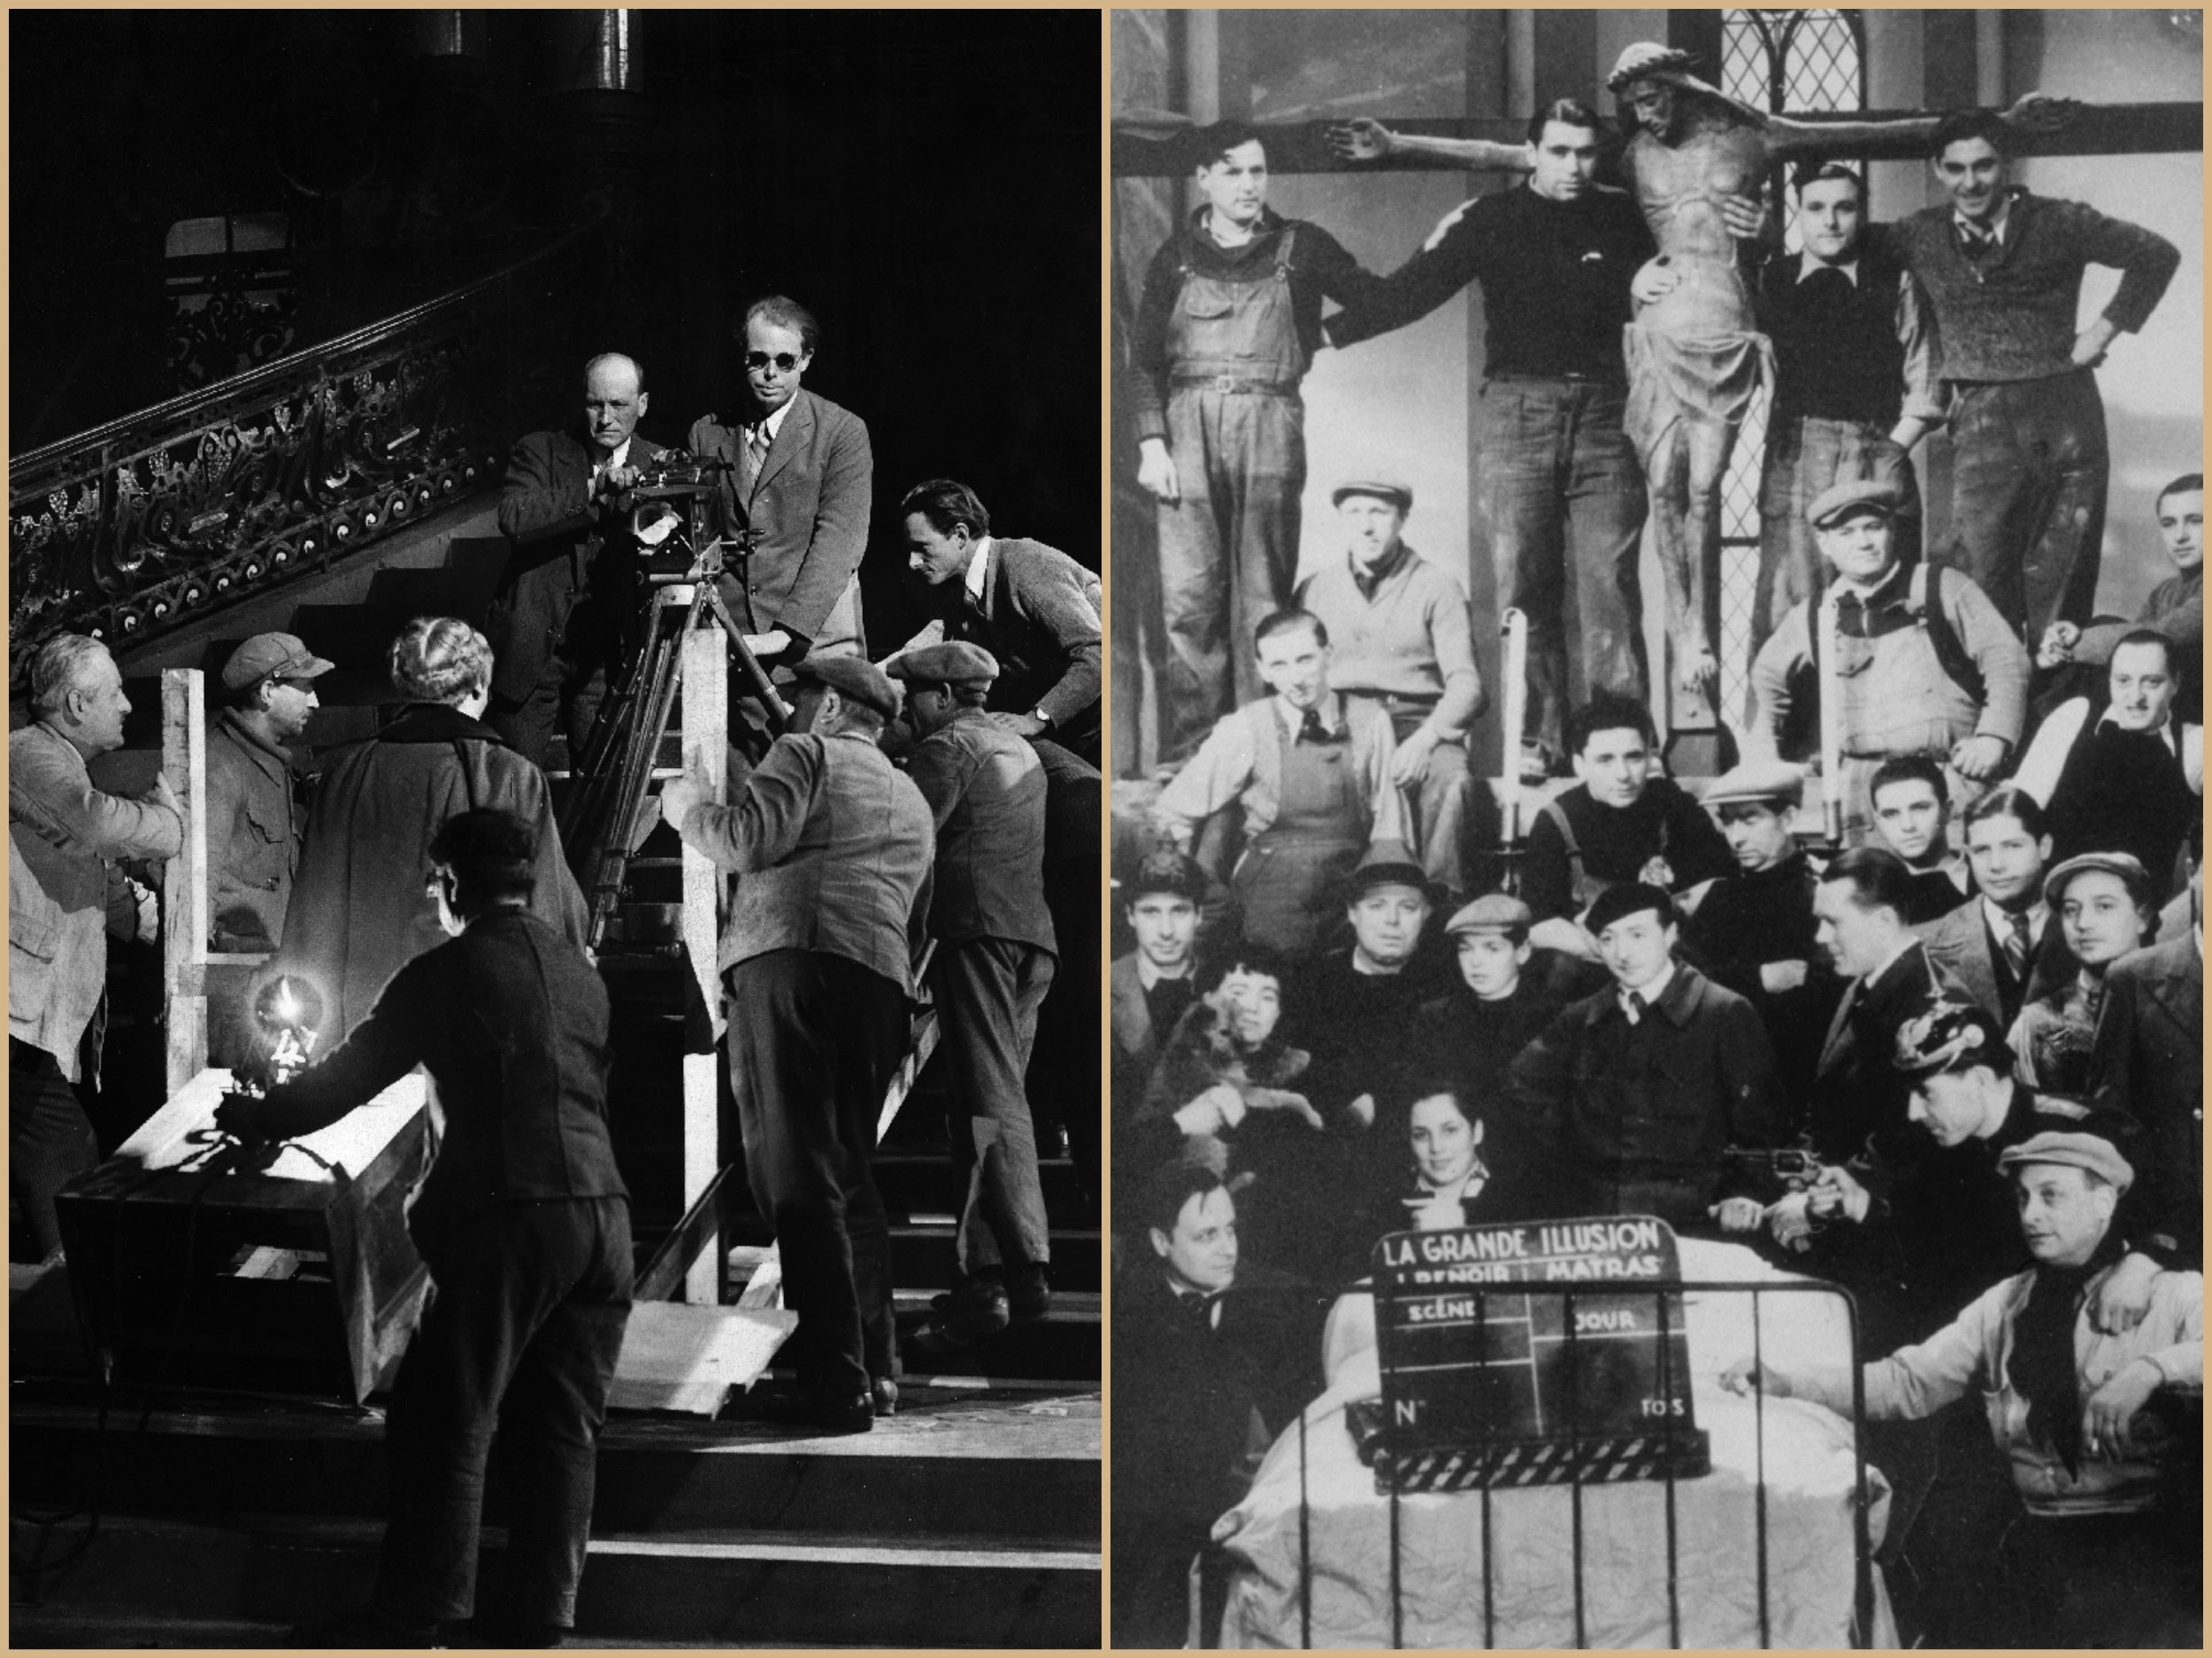 Collage of Renoir in action in the 1920s and 30s.